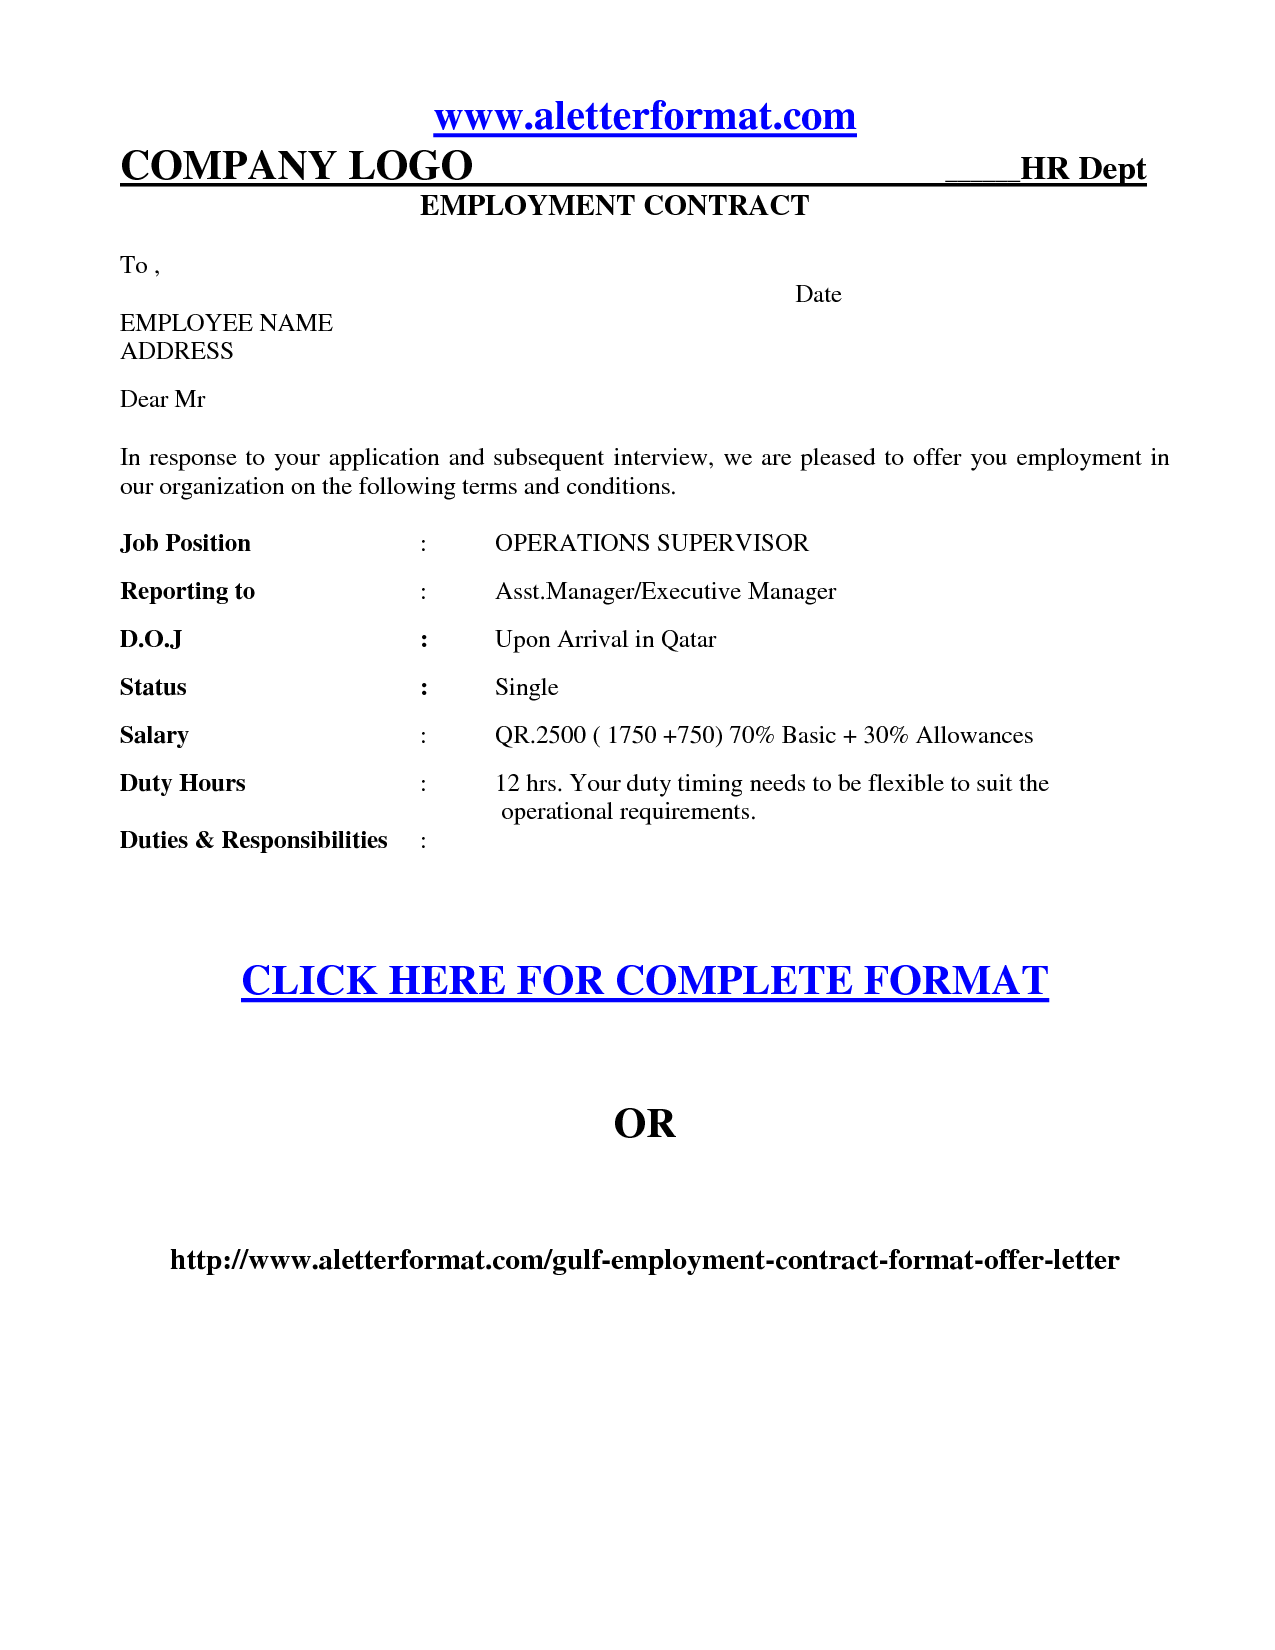 Is An Offer Letter A Contract.Job Offer Agreement Employment Contract Letter Sample